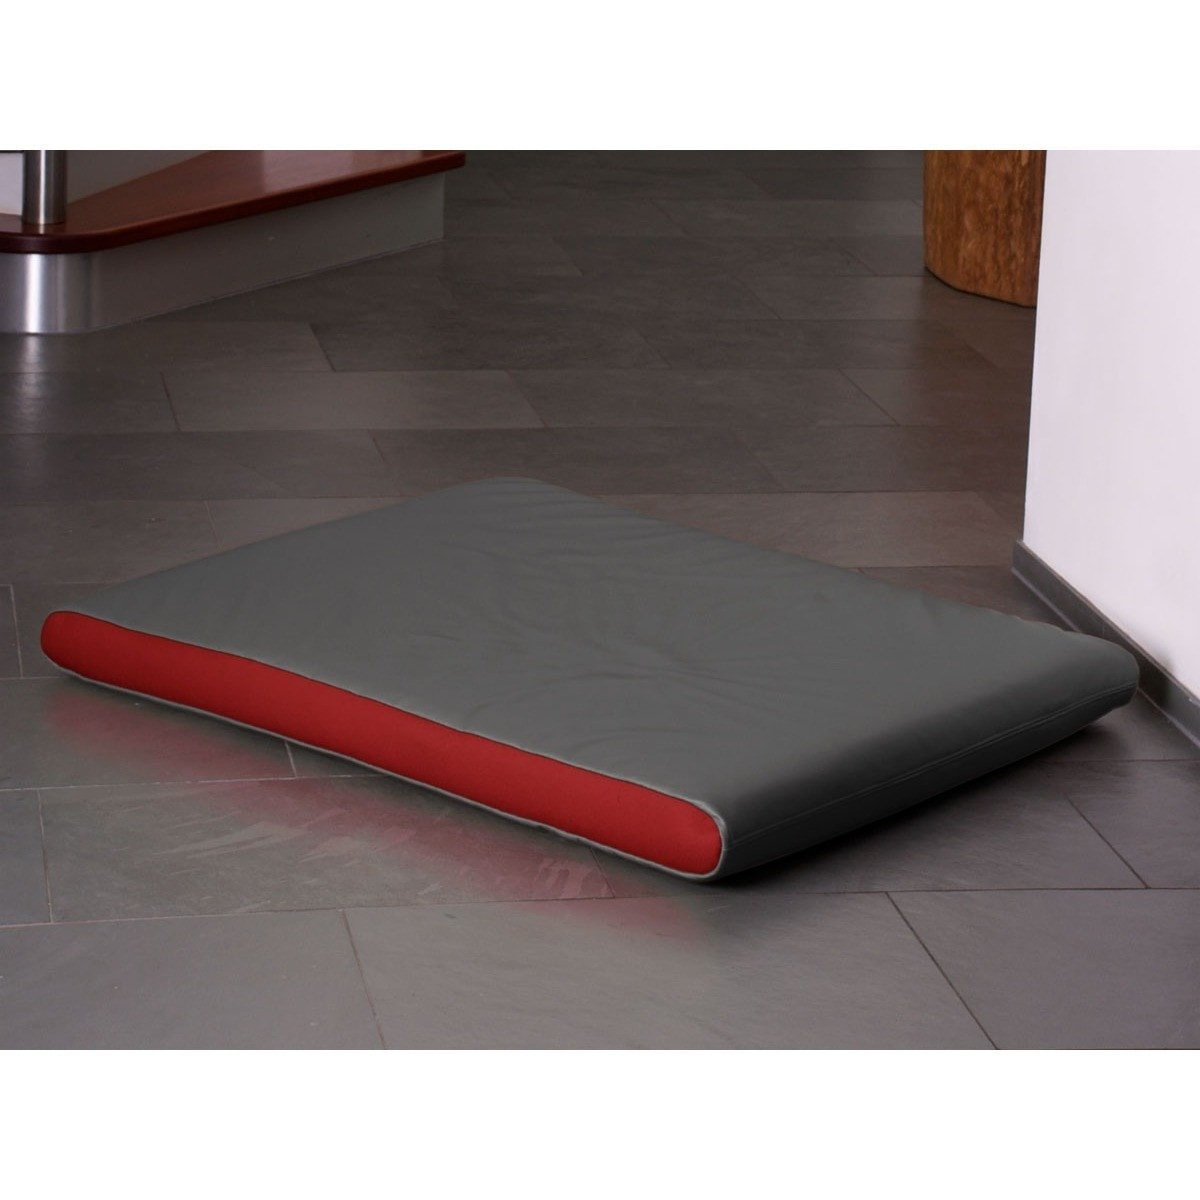 Pet Interiors Dog Beds Medium / Red Memory Foam Dog Mattress in Grey Faux Leather PetsOwnUs - Pets Own Us